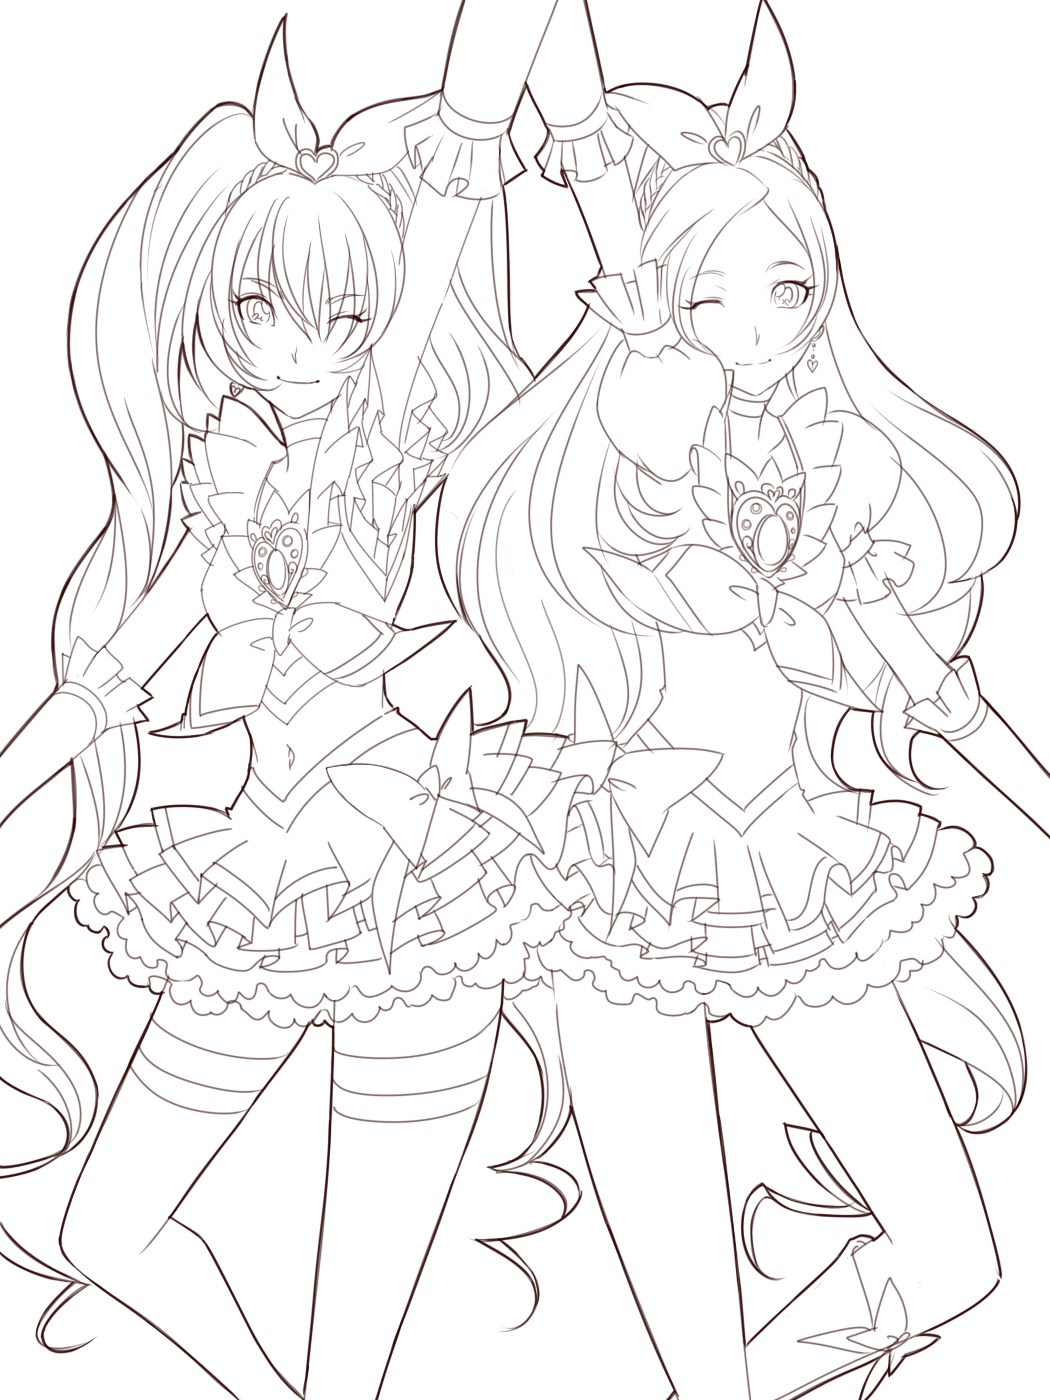 Detailed Anime Coloring Pages At Getcolorings